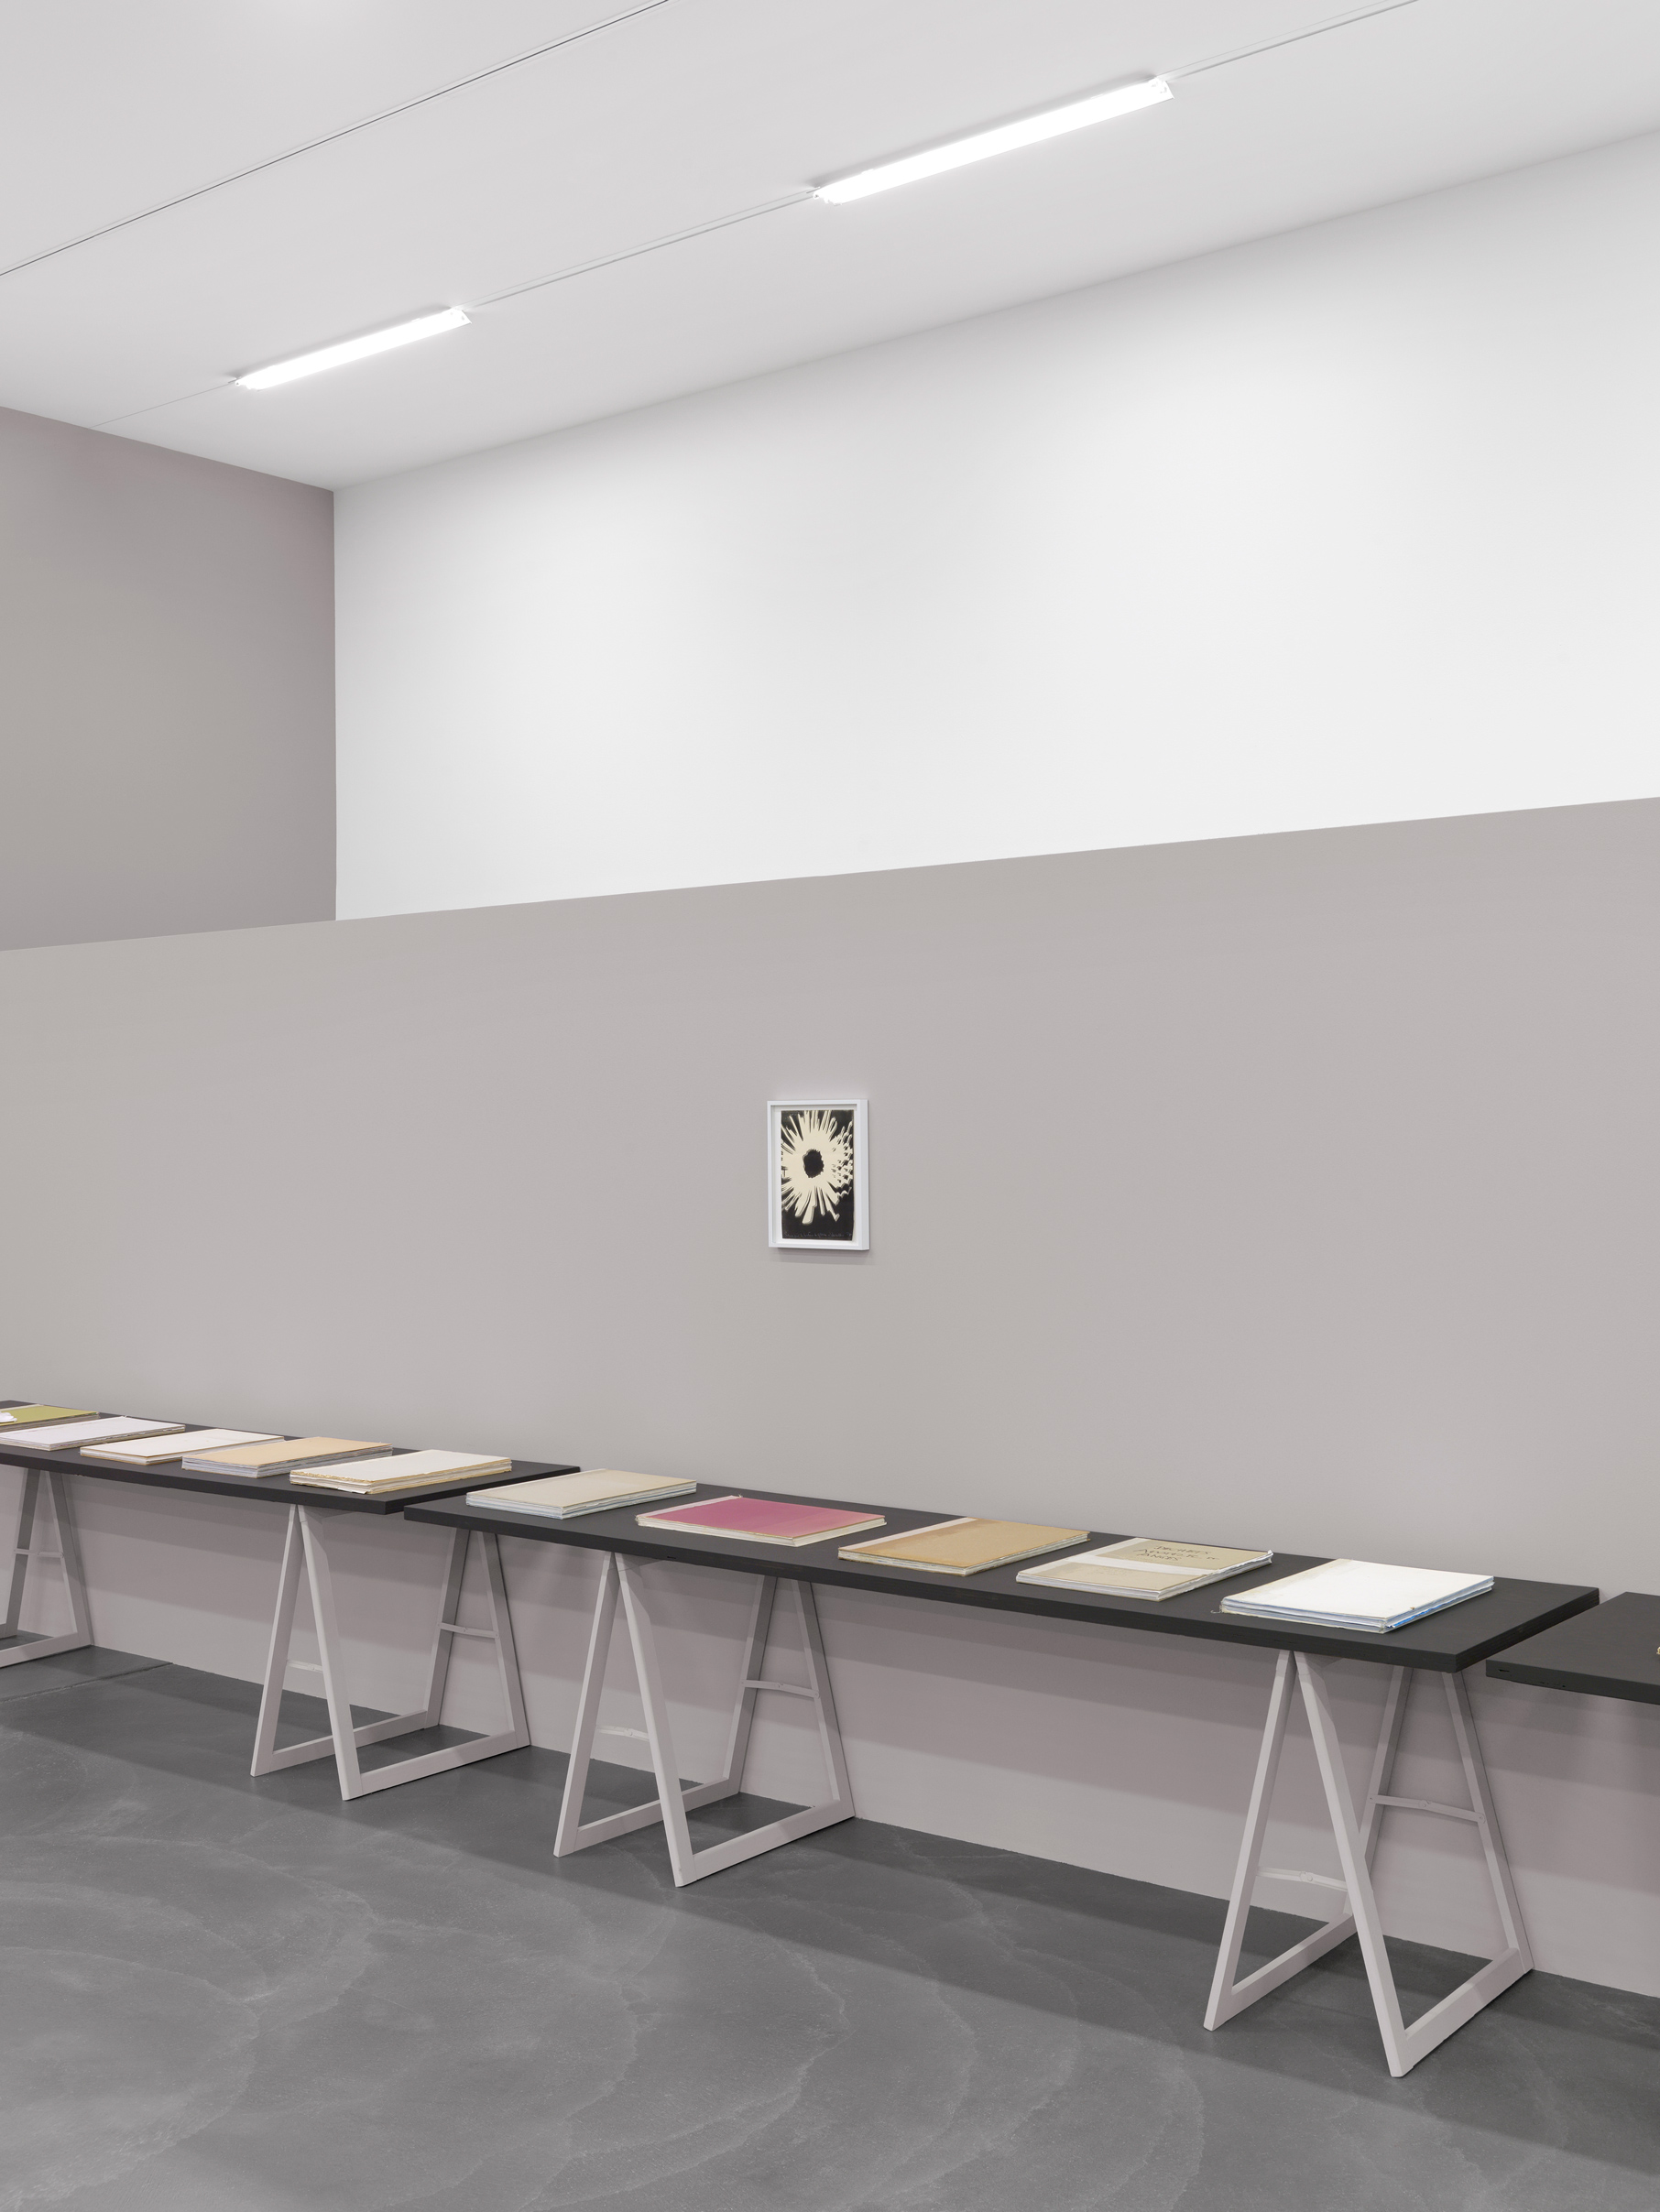 Something other than either at Kunsthalle Zürich, 11.12.2020–02.05.2021 Photo by Annik Wetter